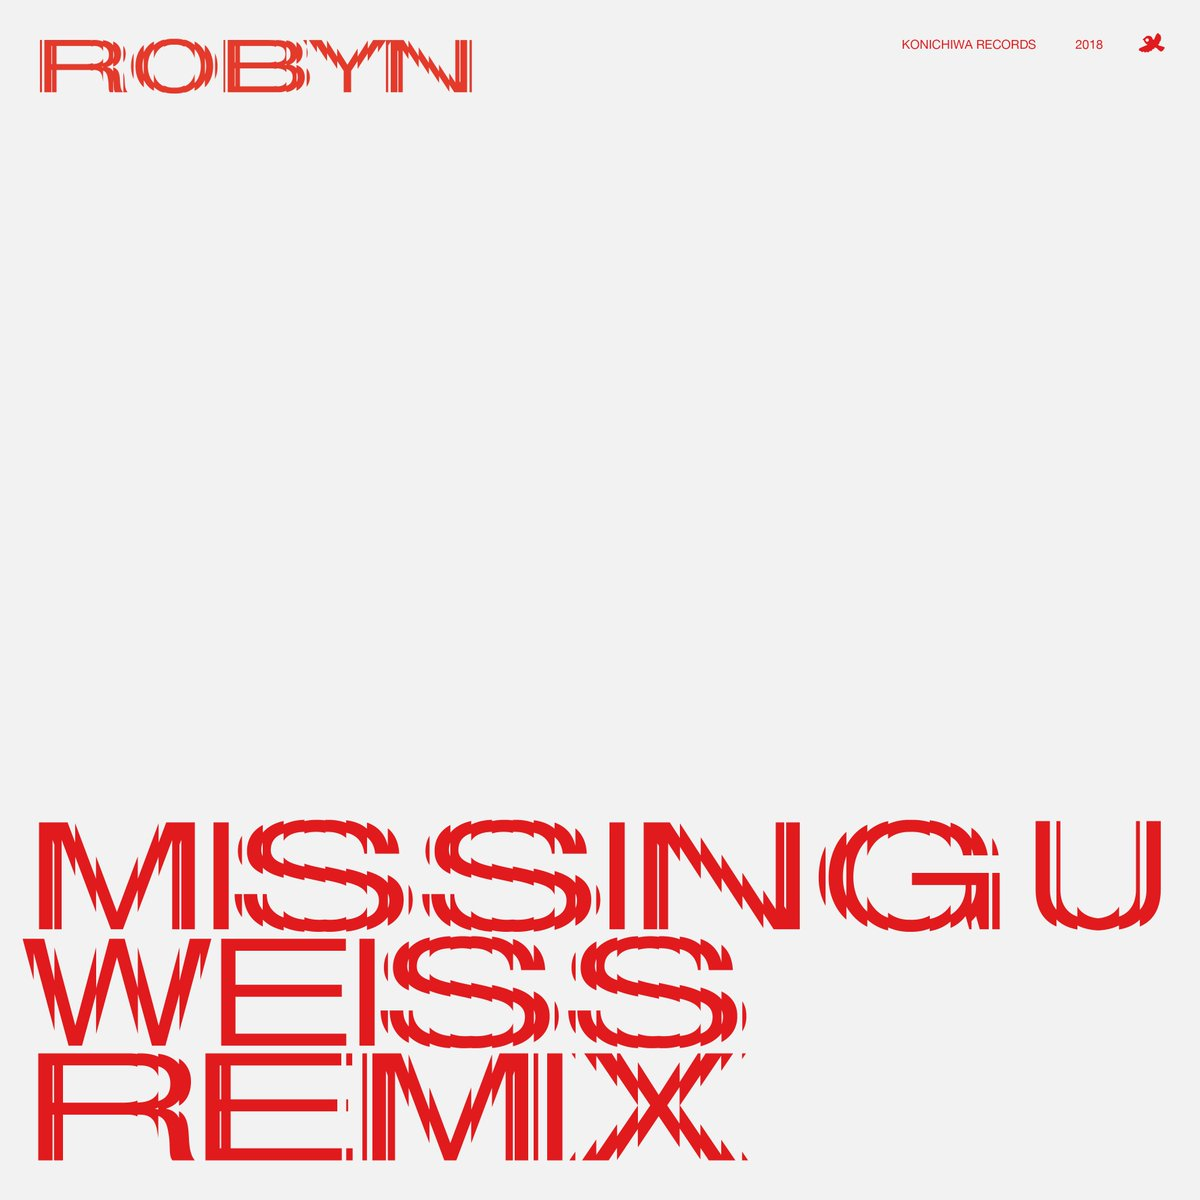 First remix of Missing U is out! Thank you @Weiss_UK ✨ � love it!